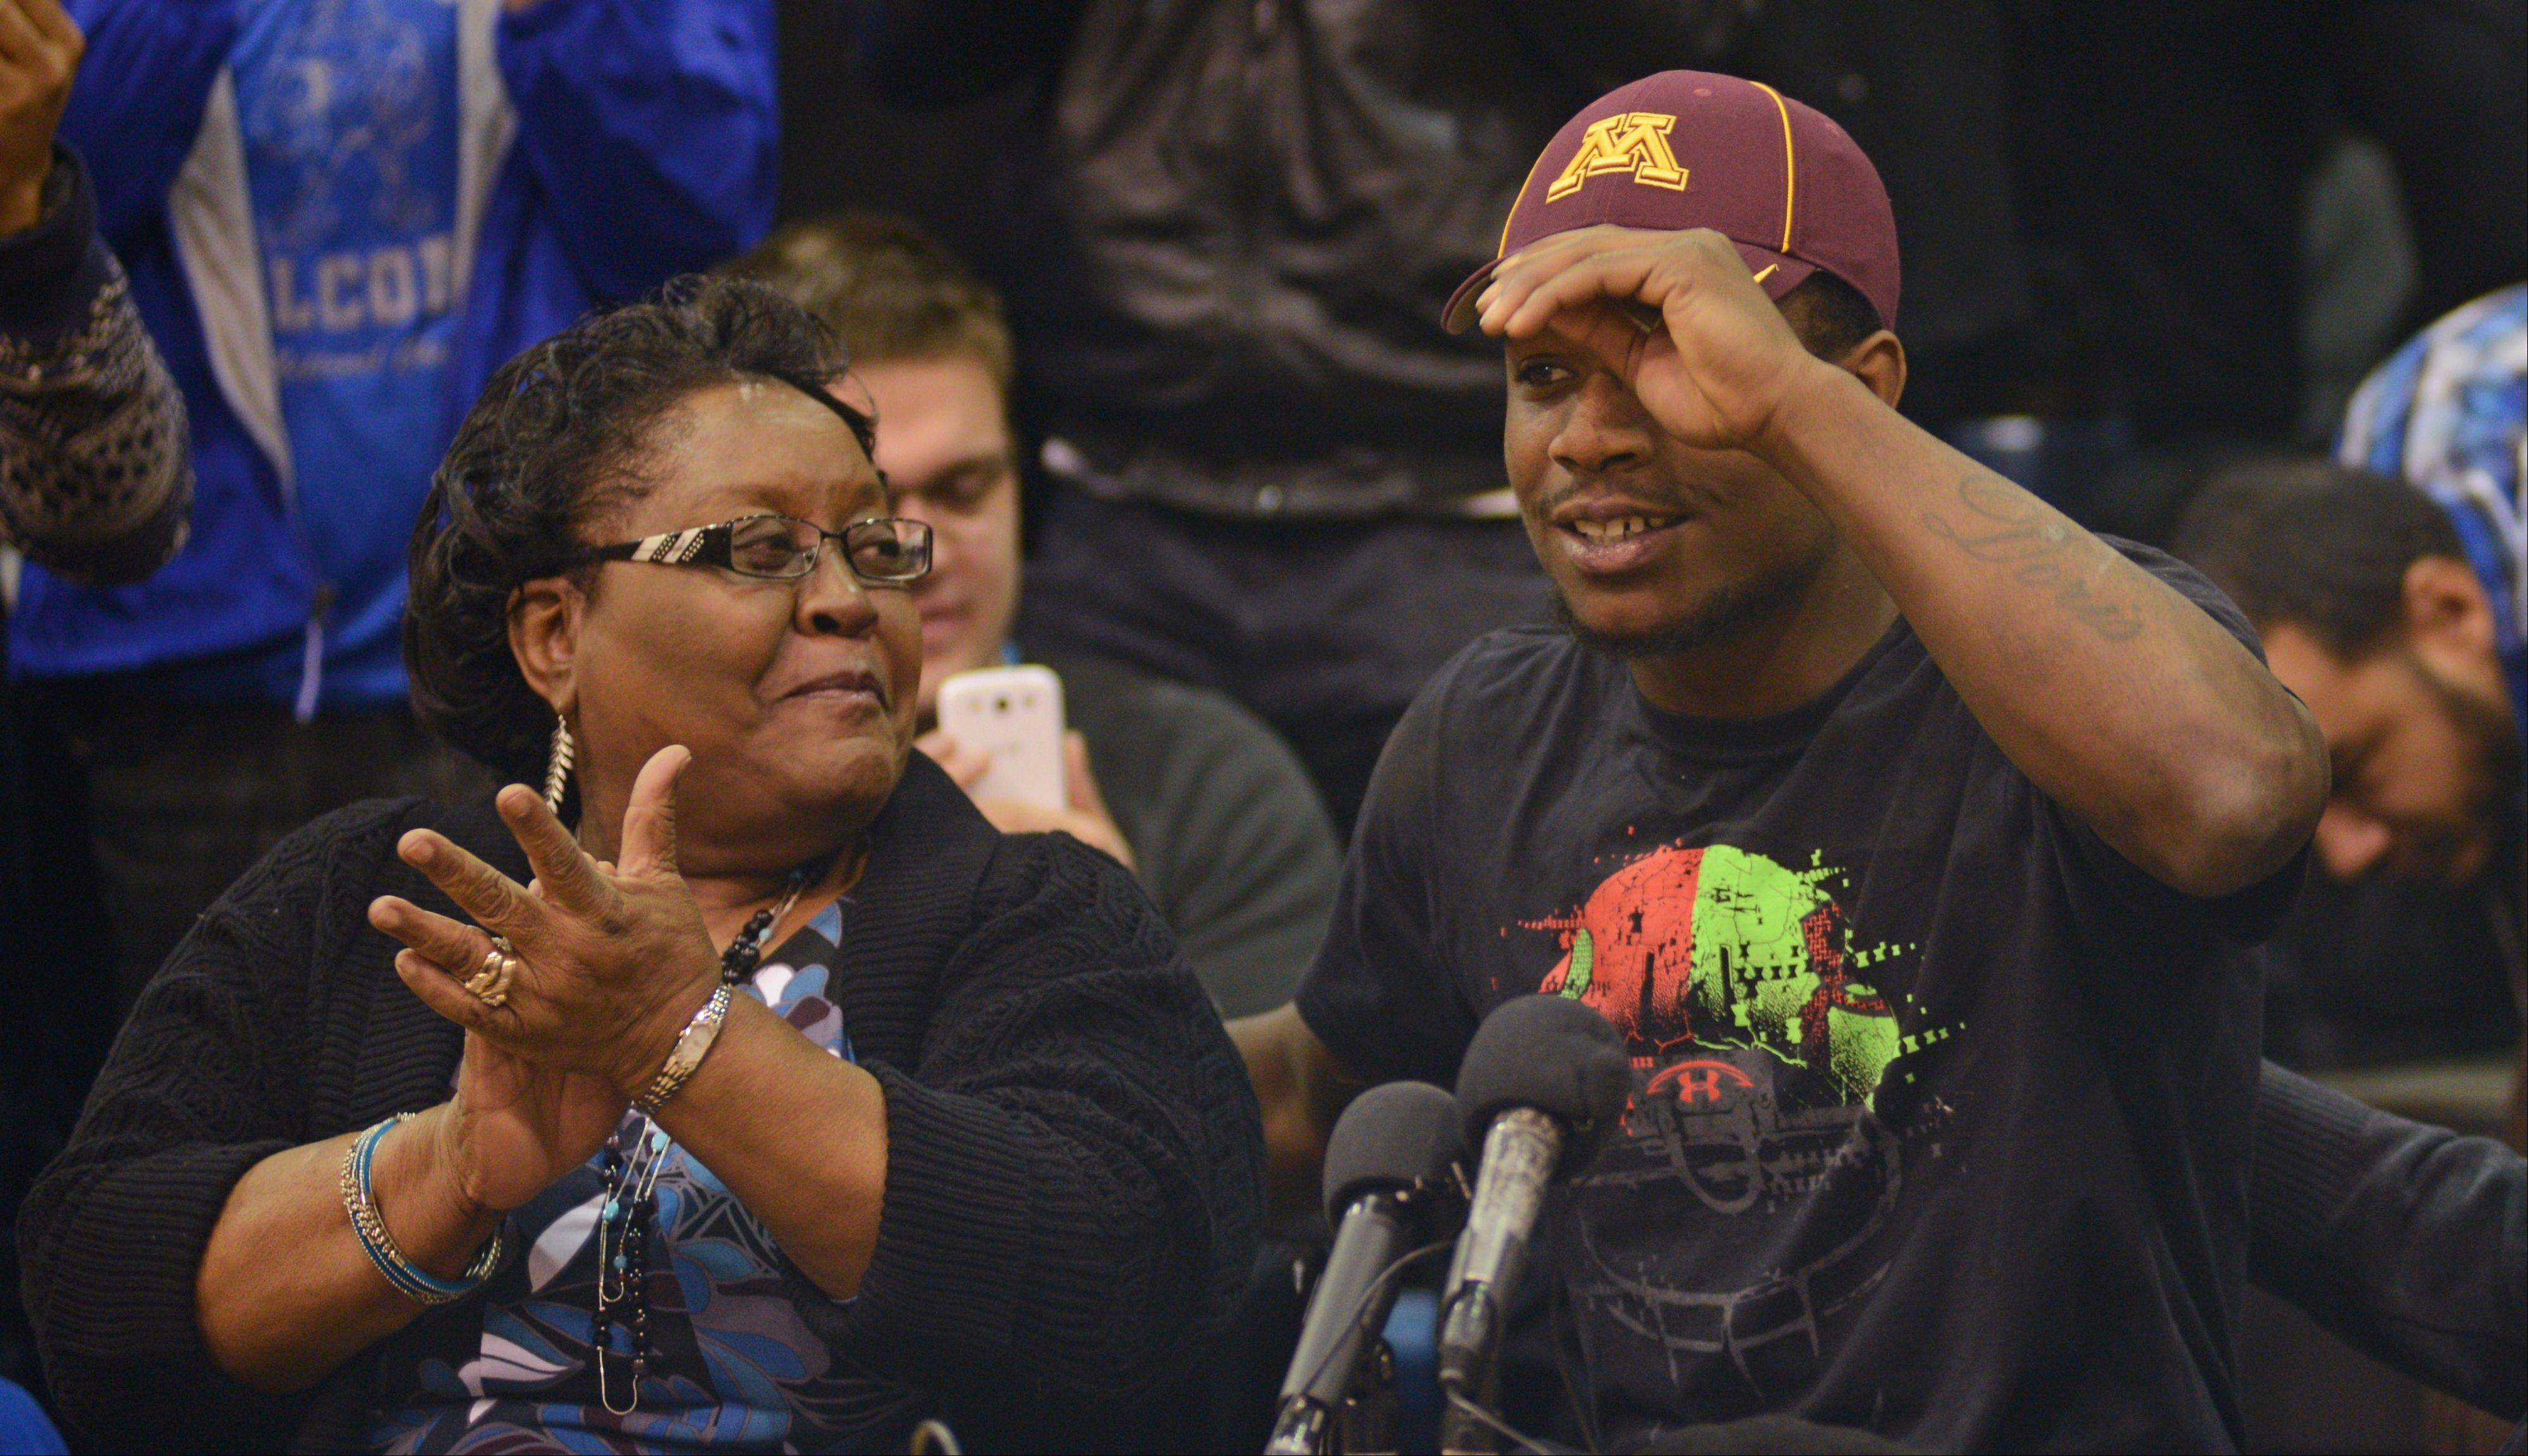 Jeff Jones, a running back from Minneapolis Washburn, puts on a Minnesota cap while his grandmother Doris Jones applauds, Wednesday, Feb. 5, 2014, in Minneapolis. Jones upheld his verbal commitment to the program by announcing his decision Wednesday on national signing day to join the Gophers football team. (AP Photo/Star Tribune, Richard Sennott) ST. PAUL OUT MINNEAPOLIS-AREA TV OUT MAGS OUT